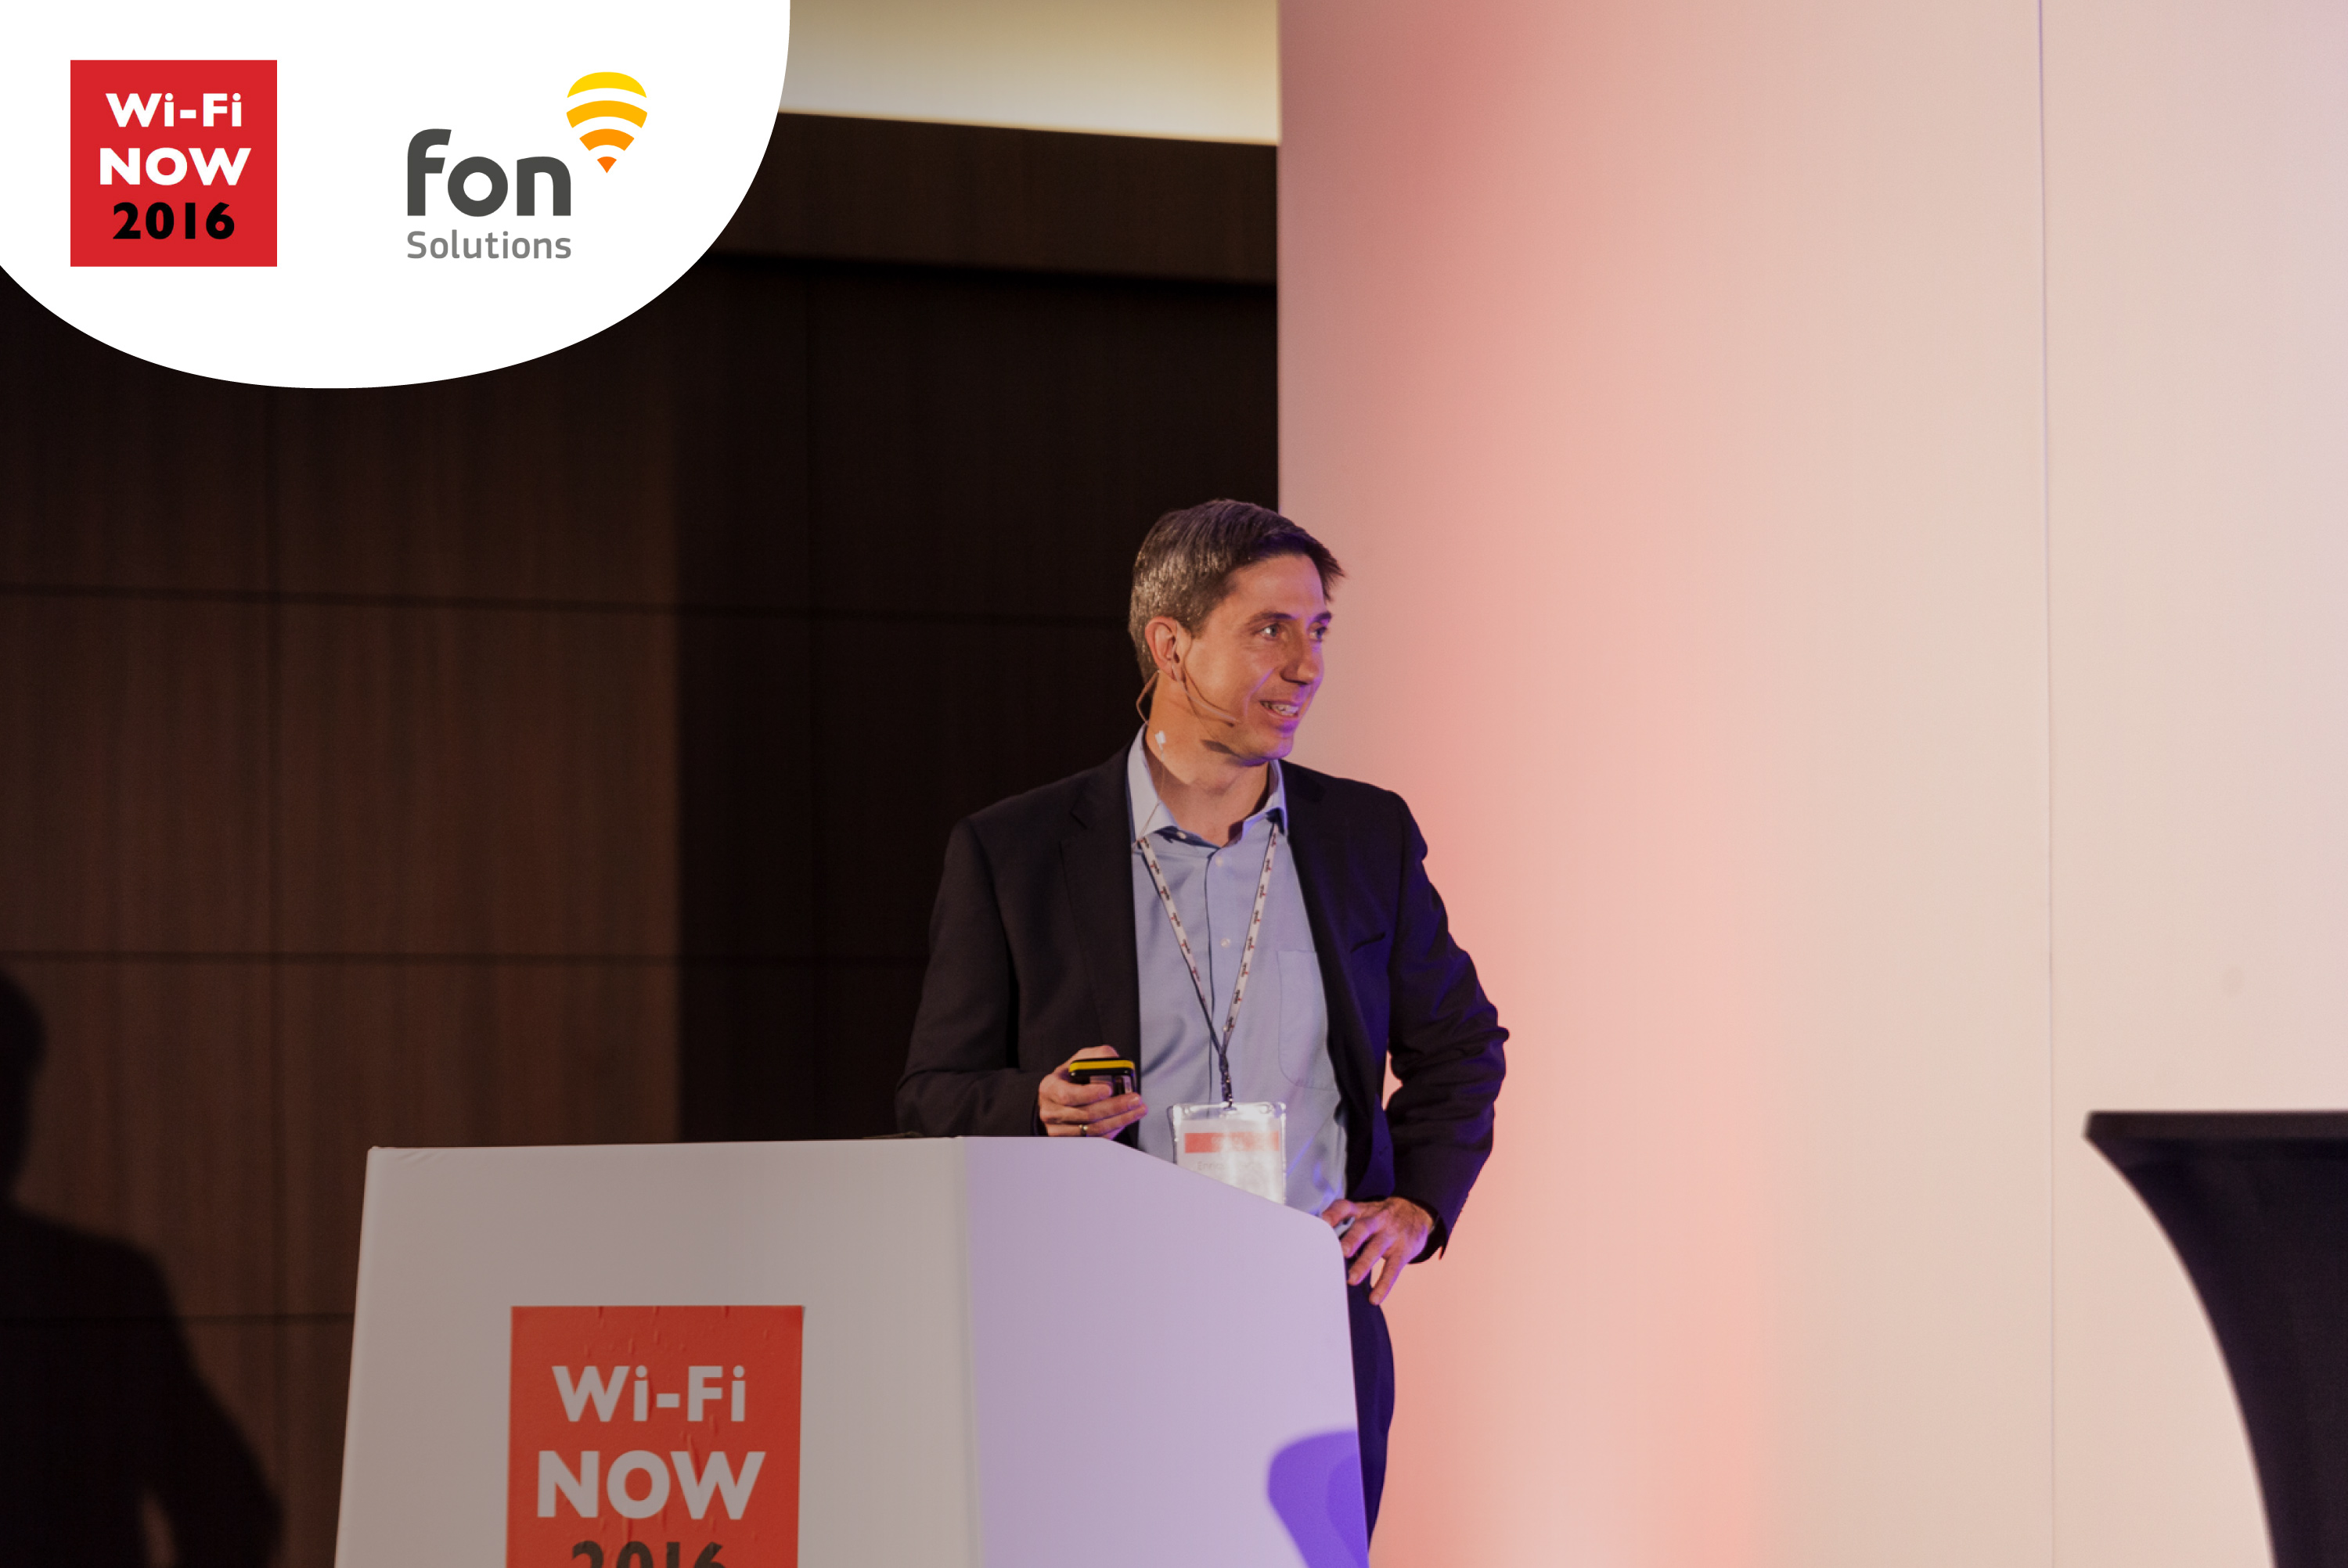 Fon presents Fon Solutions at Wi-Fi Now 2016 in London